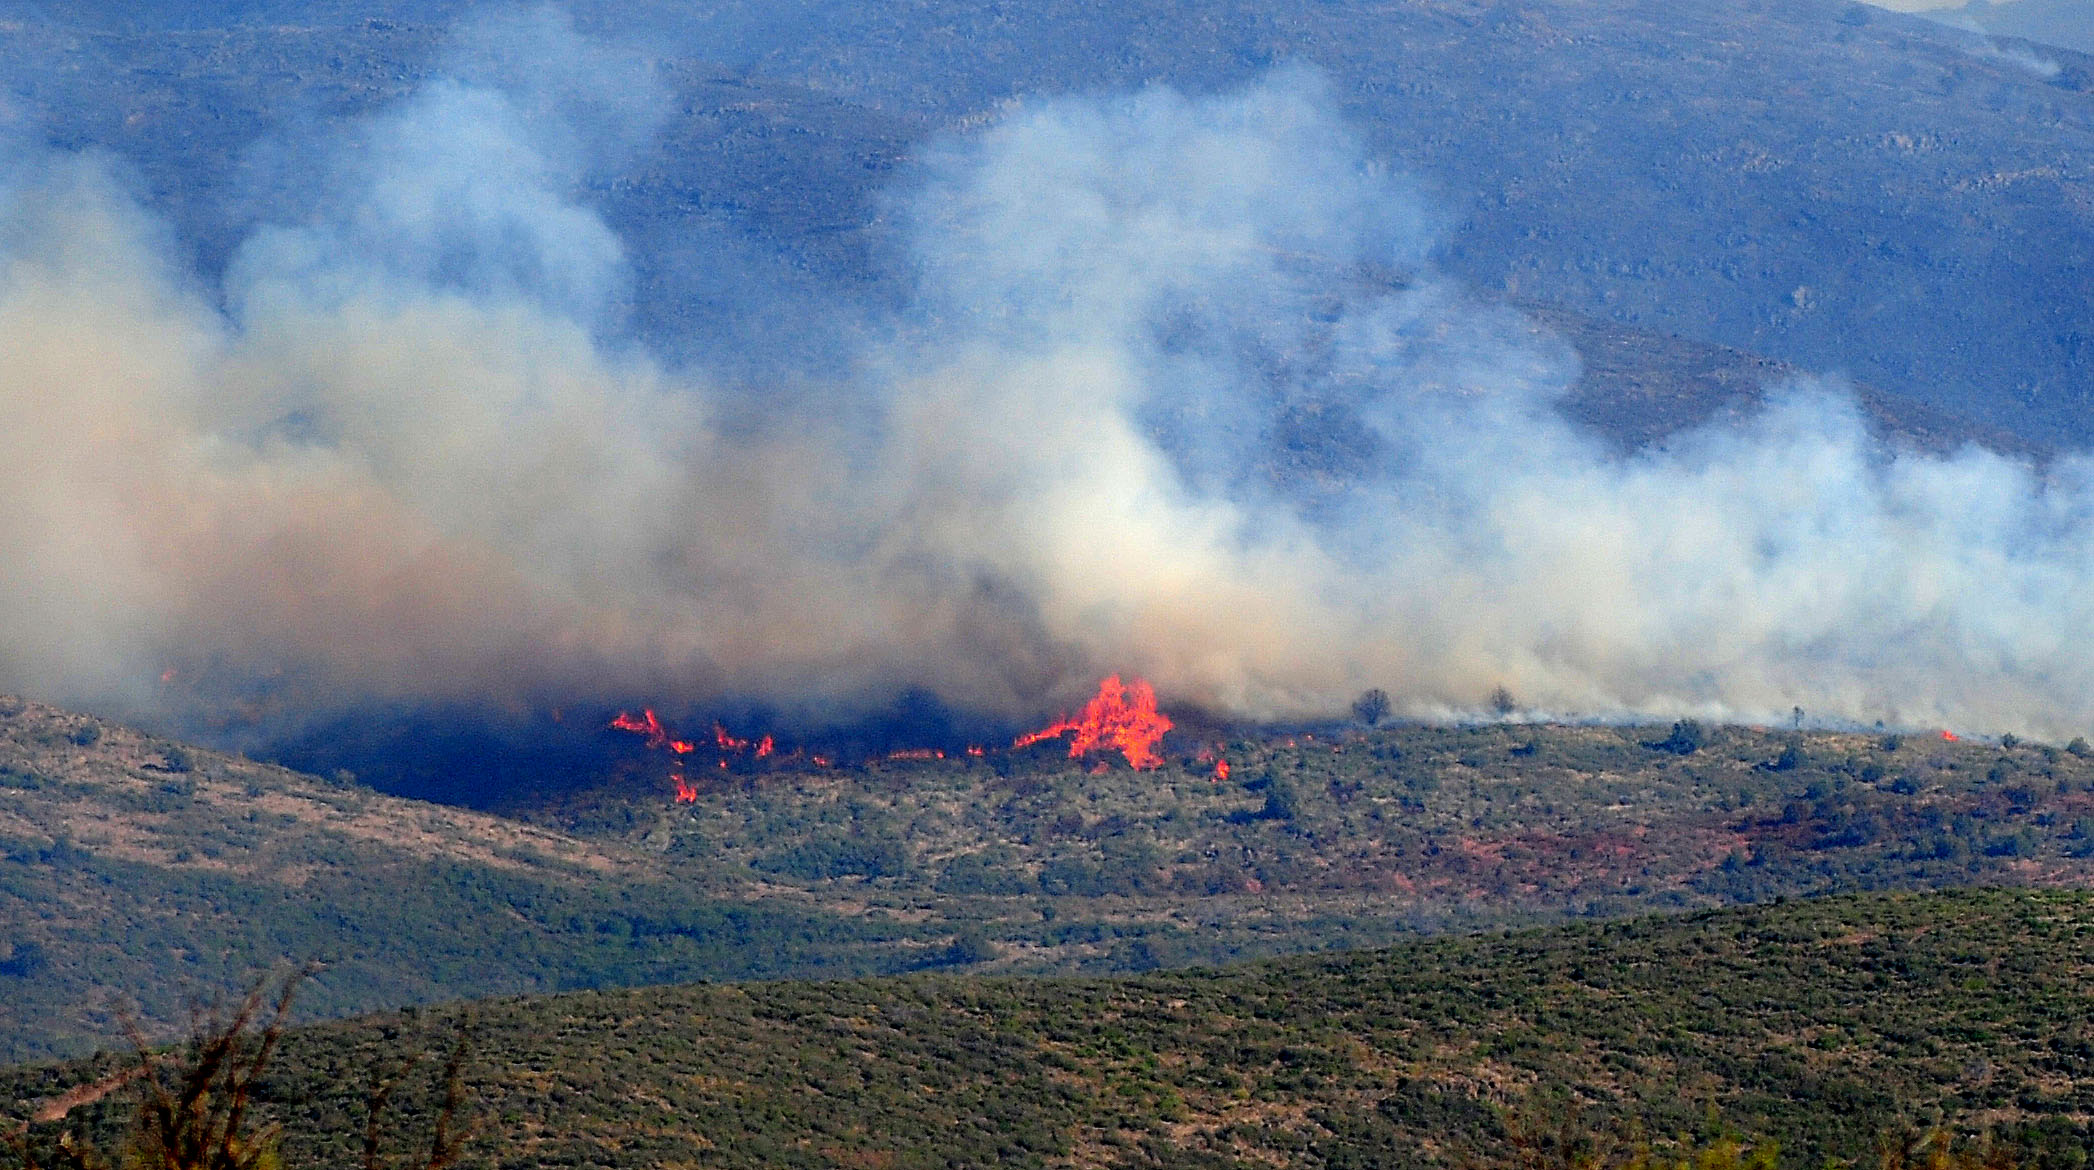 Arizona yavapai county yarnell - Yarnell Update Tenderfoot Fire At 3 300 Acres Hwy 89 To Reopen The Daily Courier Prescott Az